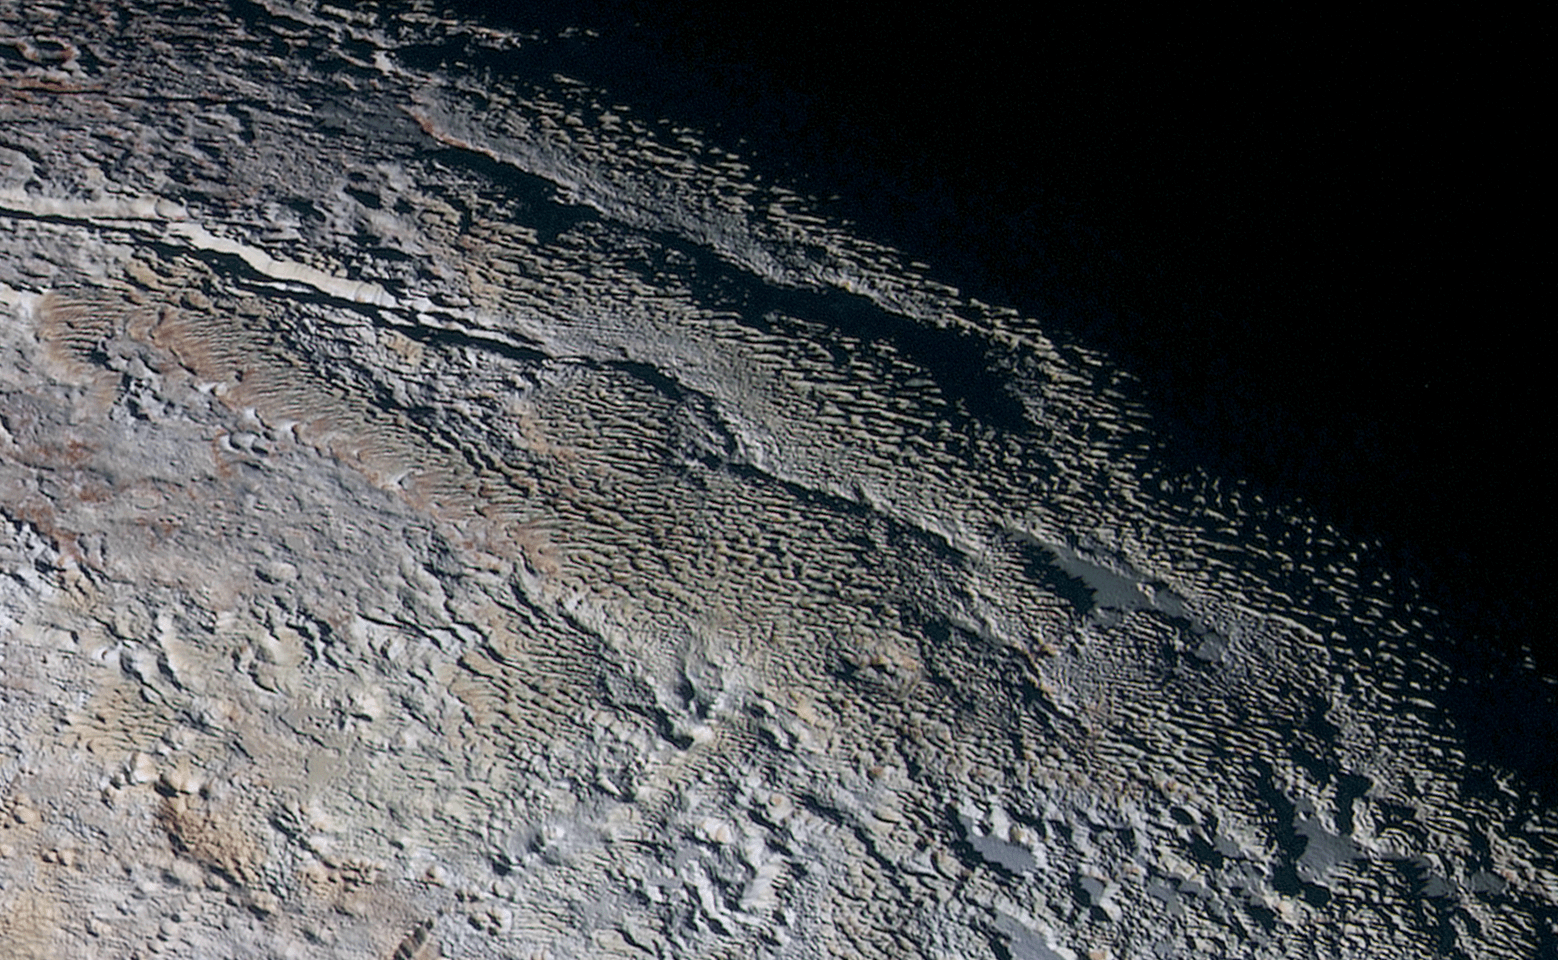 This color image of Pluto taken by NASA's New Horizons spacecraft shows rounded and bizarrely textured mountains, informally named the Tartarus Dorsa, rise up along Pluto's terminator and show intricate but puzzling patterns of blue-gray ridges and reddish material in between. This view, roughly 330 miles (530 kilometers) across, combines blue, red and infrared images taken by the Ralph/Multispectral Visual Imaging Camera (MVIC) on July 14, 2015, and resolves details and colors on scales as small as 0.8 miles (1.3 kilometers).   Credits: NASA/JHUAPL/SWRI